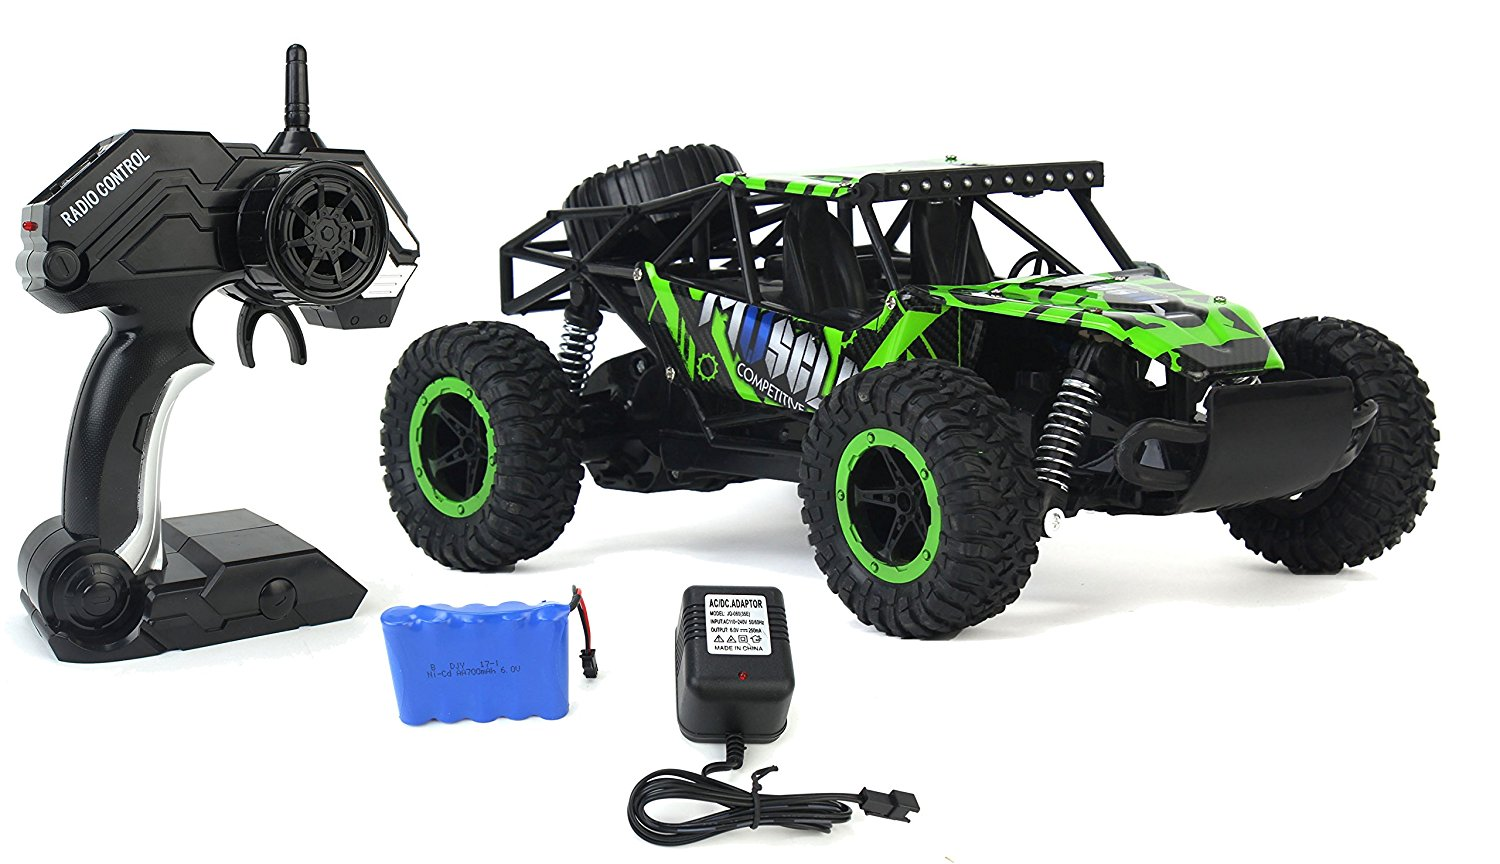 Cross Country Speed Racing Slayer Remote Control Toy Green Rally Buggy RC Car 2.4 GHz 1:16 Scale Size w ... by Velocity Toys